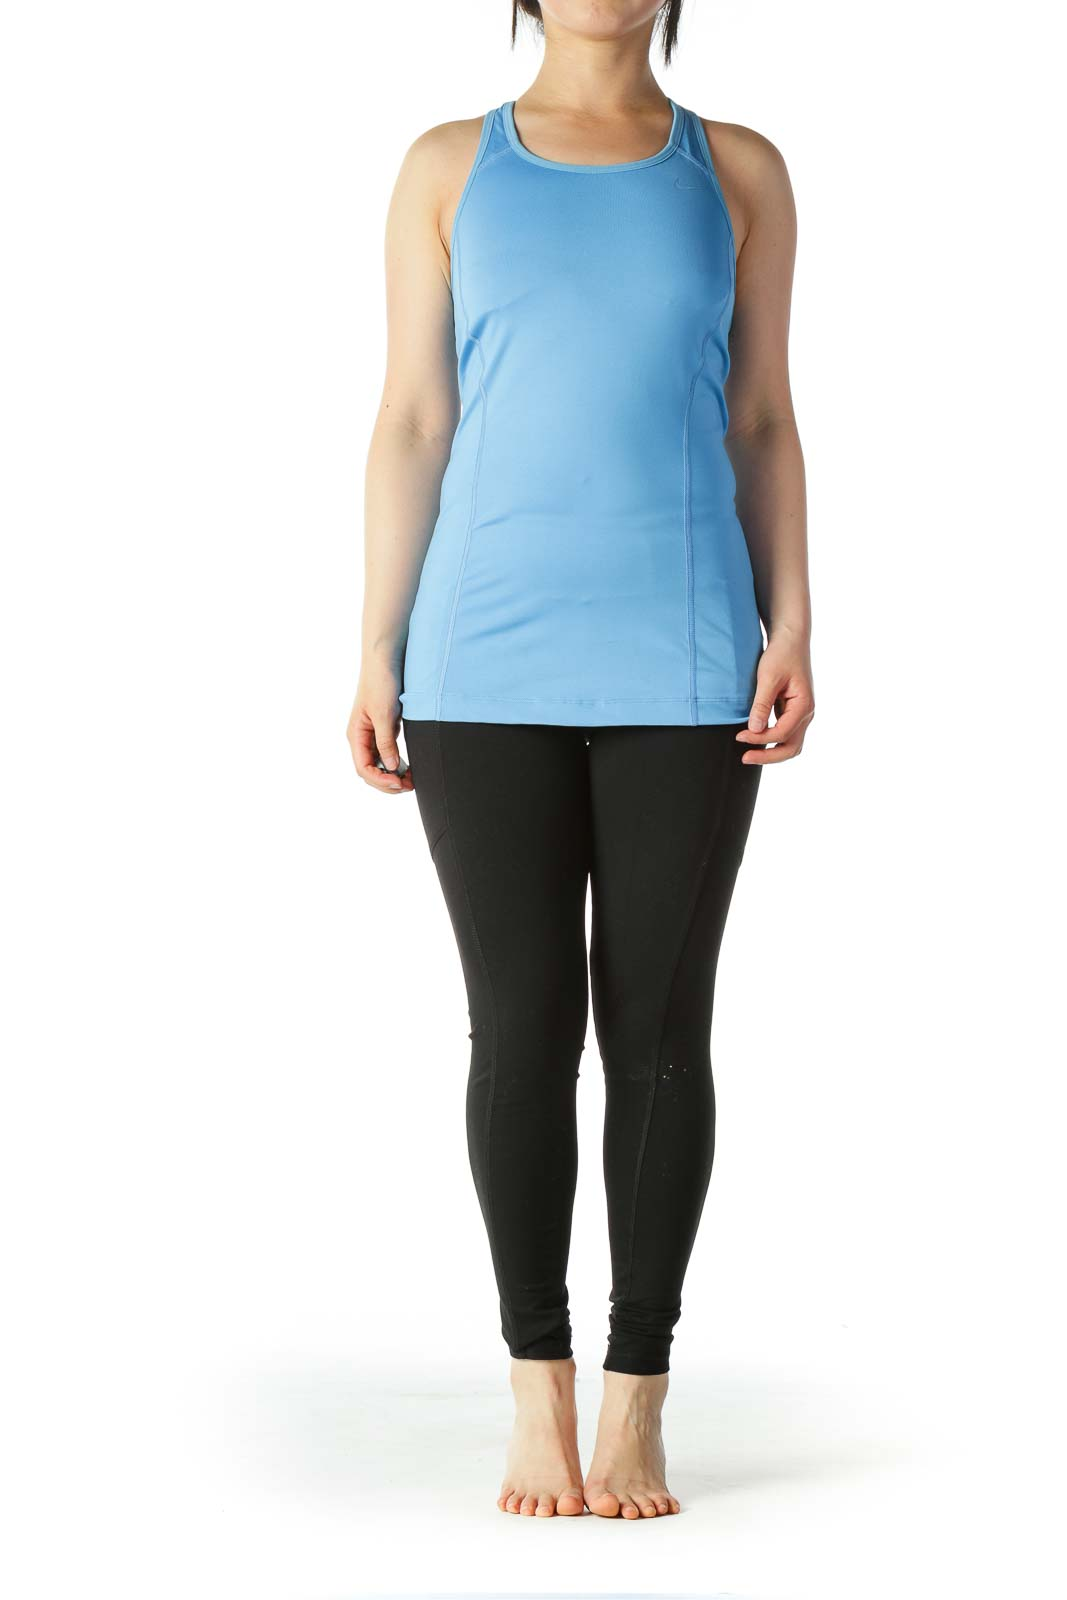 Light-Blue Racerback Activewear Top with Built-In Bra